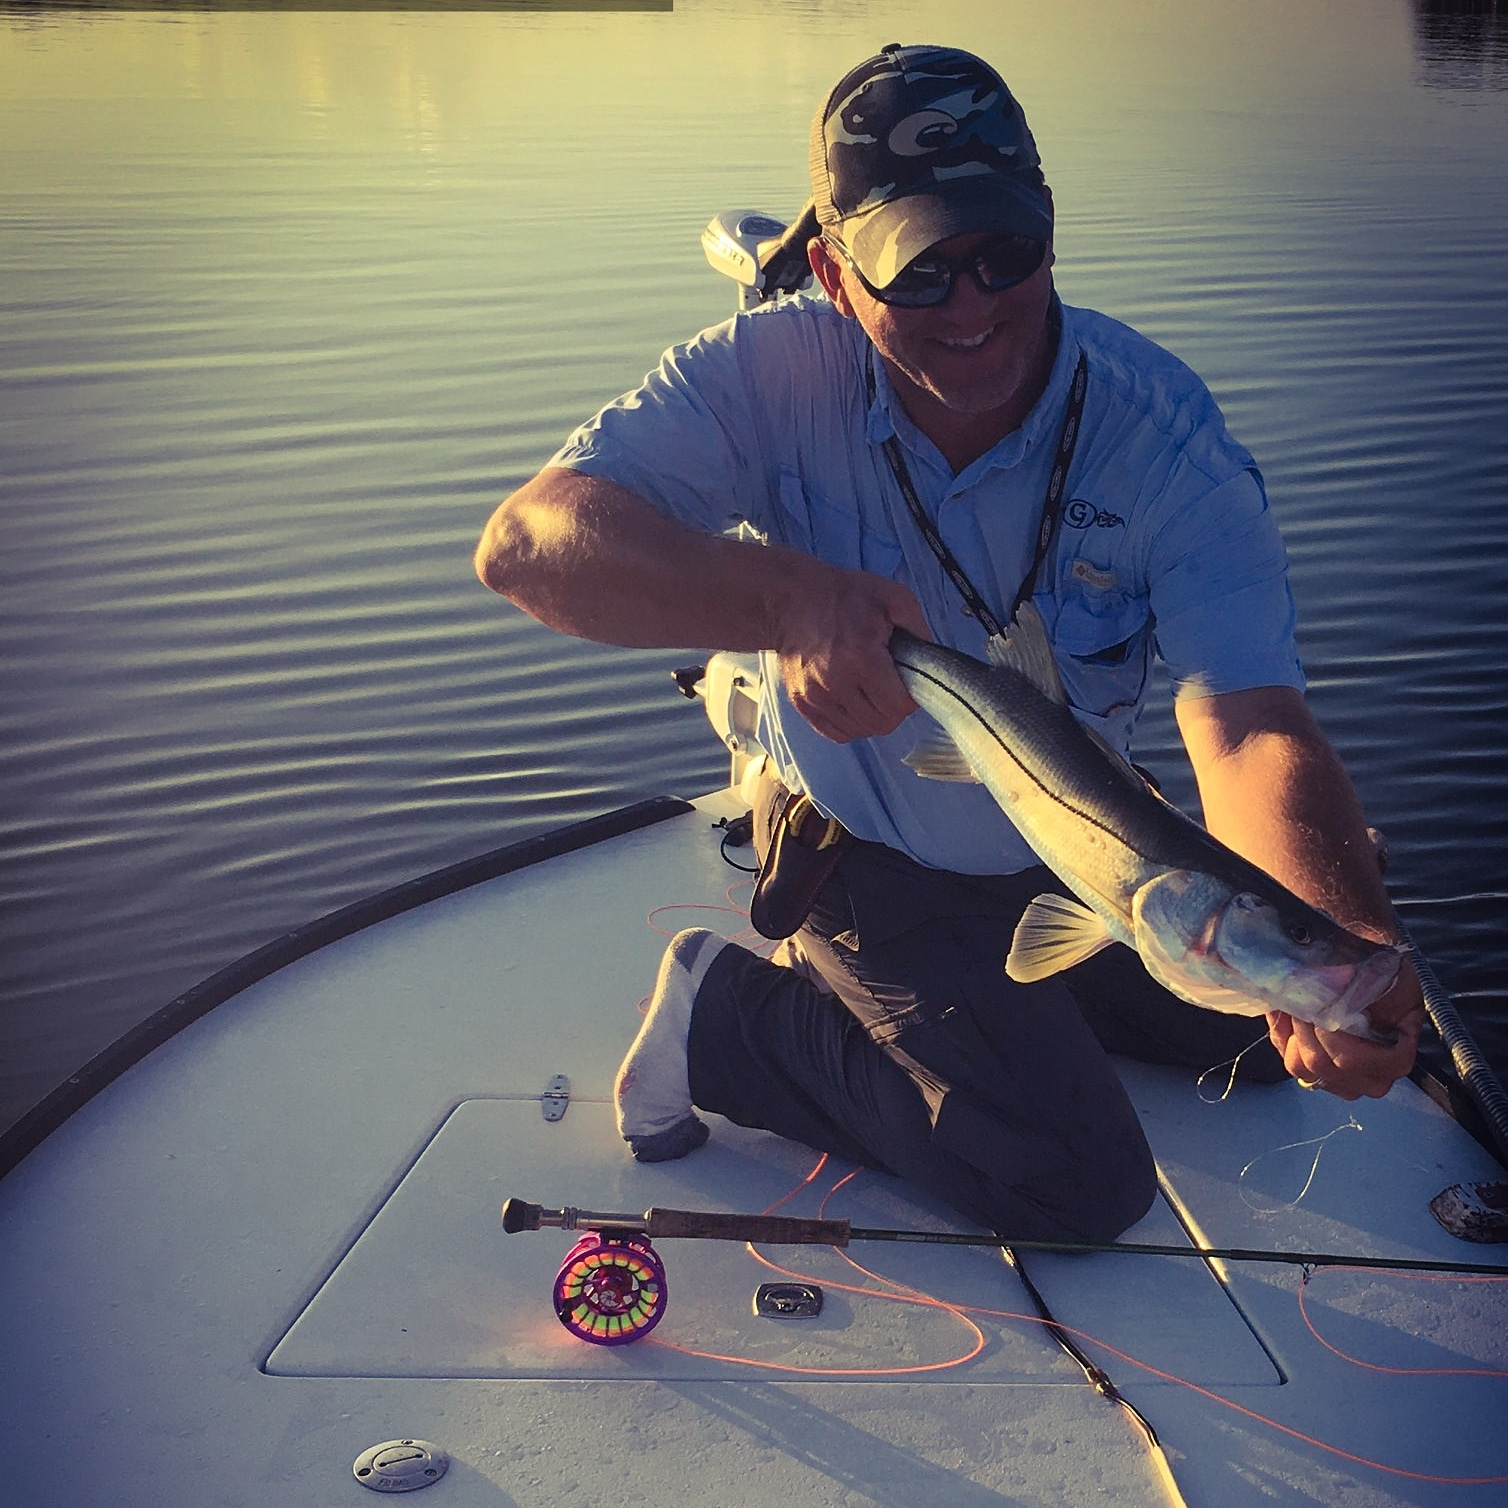 Captain John Tarr|Snook on Fly